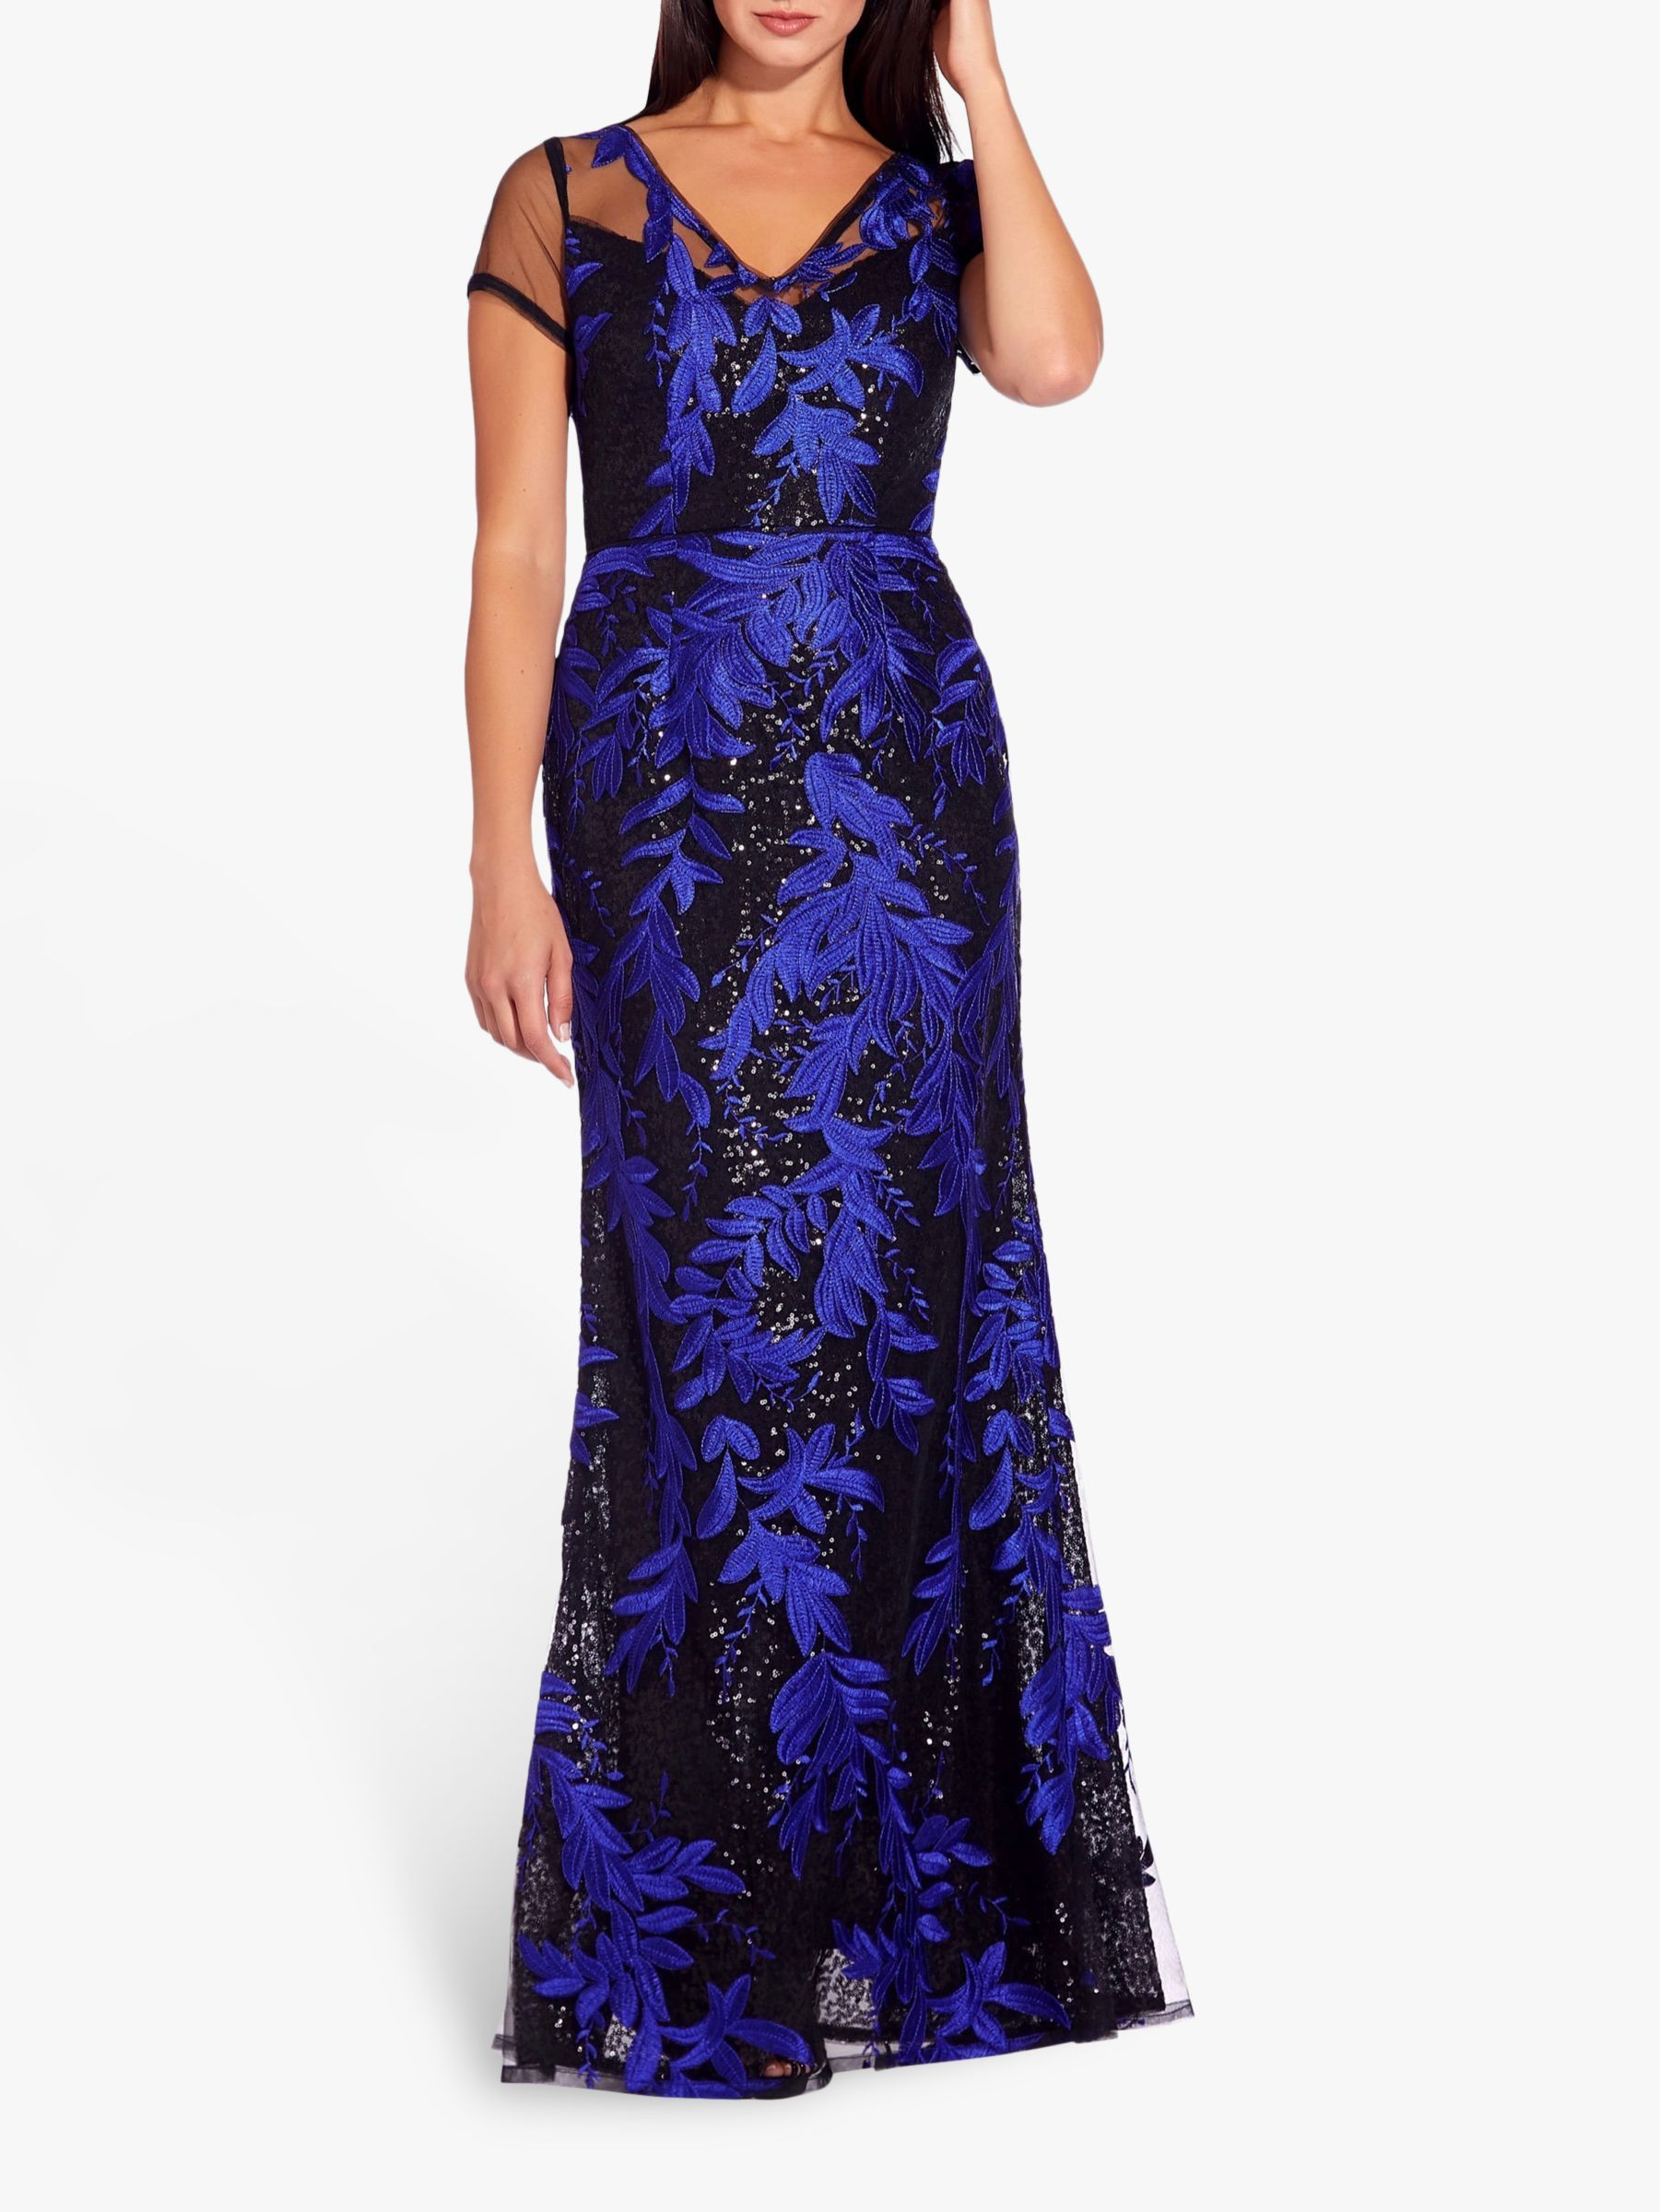 Adrianna Papell Foliage Mermaid Dress, BlackBlue | Dress